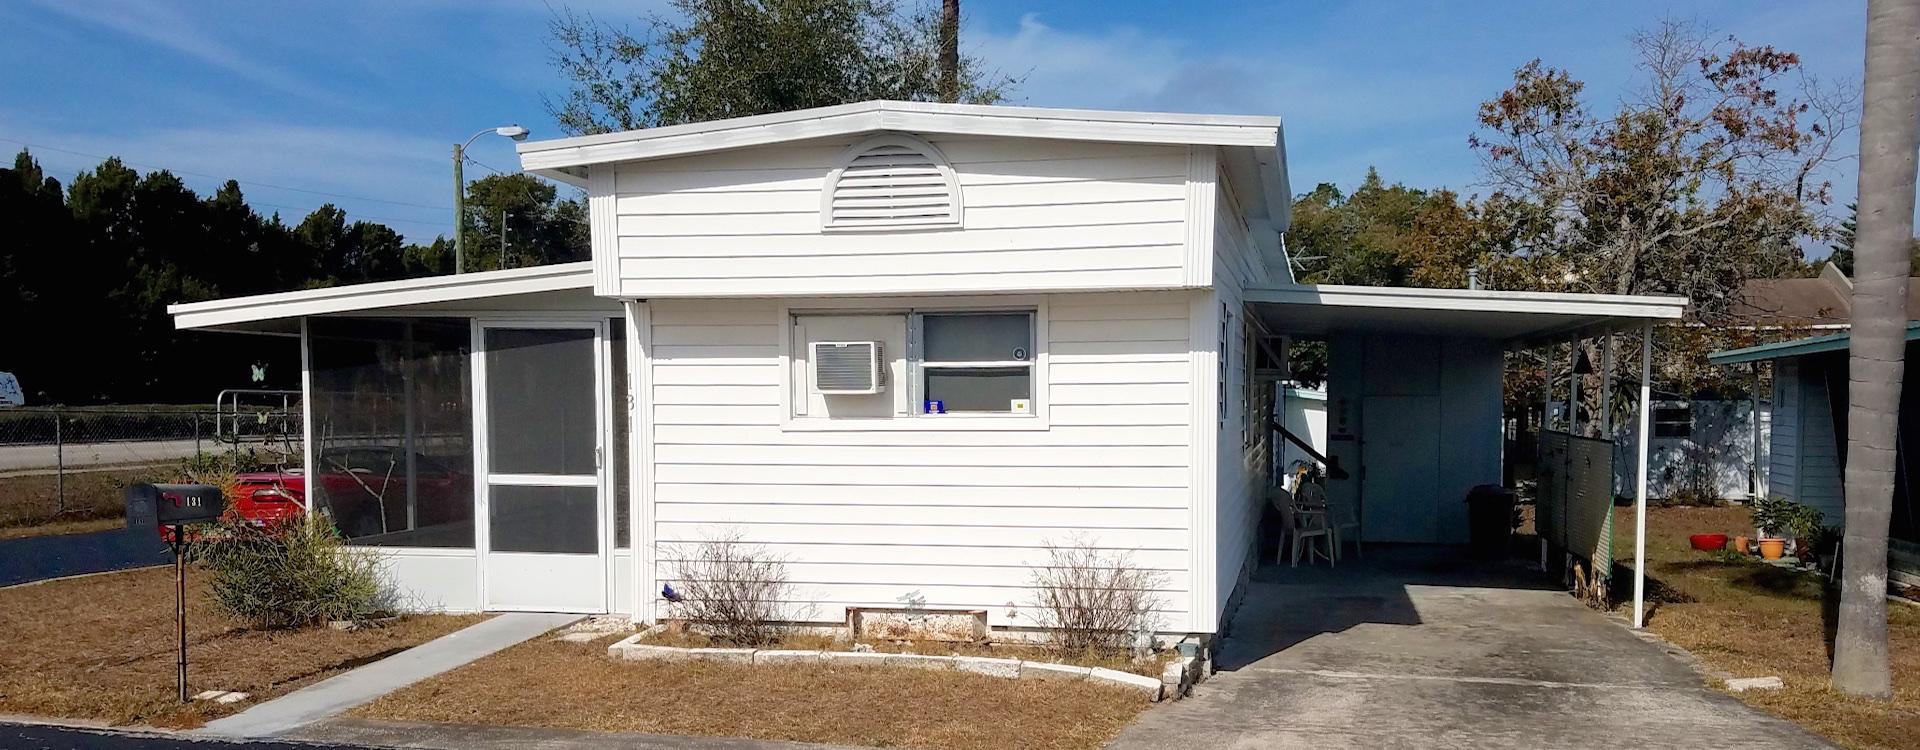 Mobile-Home-For-Sale-20170104-003-Wide Palm Harbor Mobile Home Parks In Florida on parks in largo florida, parks in destin florida, parks in oakland park florida, parks in port charlotte florida, parks in davie florida, parks in jupiter florida, parks in palmetto bay florida, parks in coral springs florida, parks in brandon florida, parks in dunedin florida, parks in winter park florida, parks in cocoa beach florida, parks in boca raton florida, parks in lakeland florida, parks in avon park florida, parks in ocala florida,